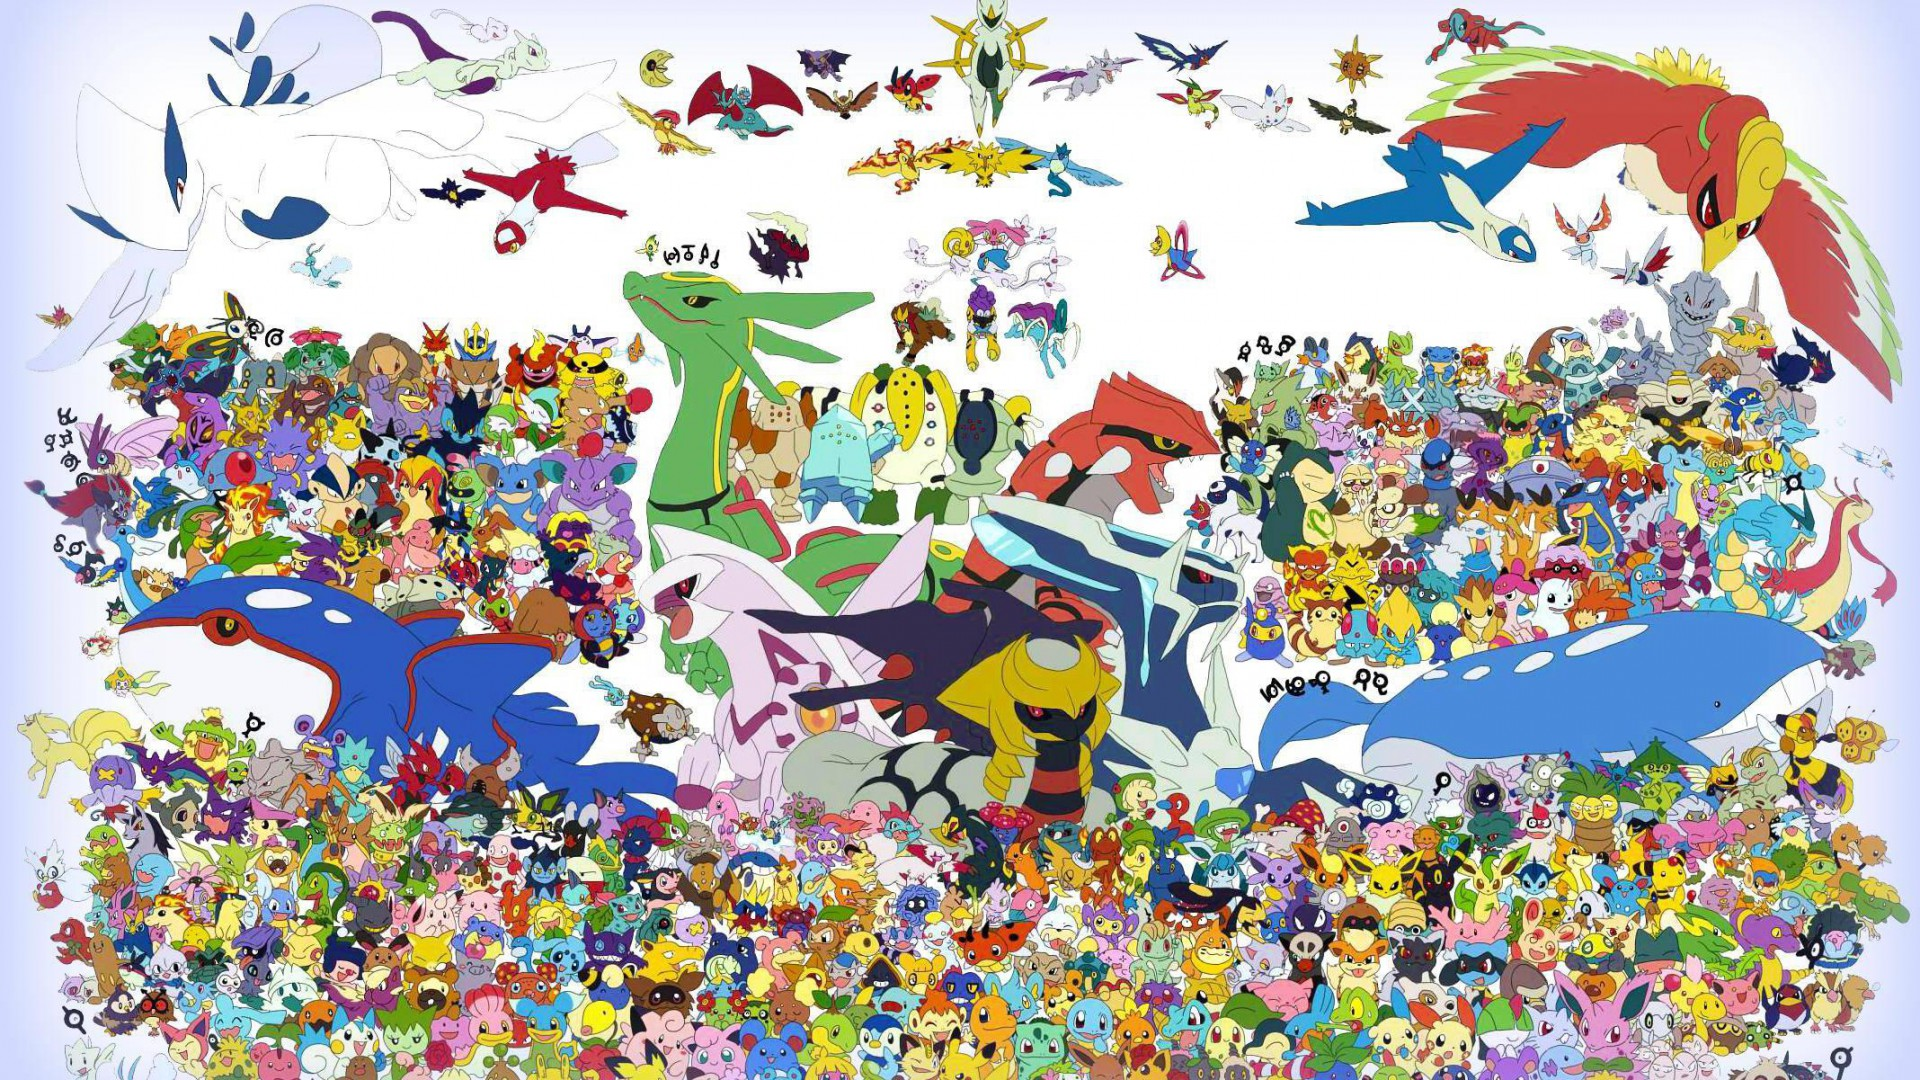 All Pokemon Wallpaper - WallpaperSafari